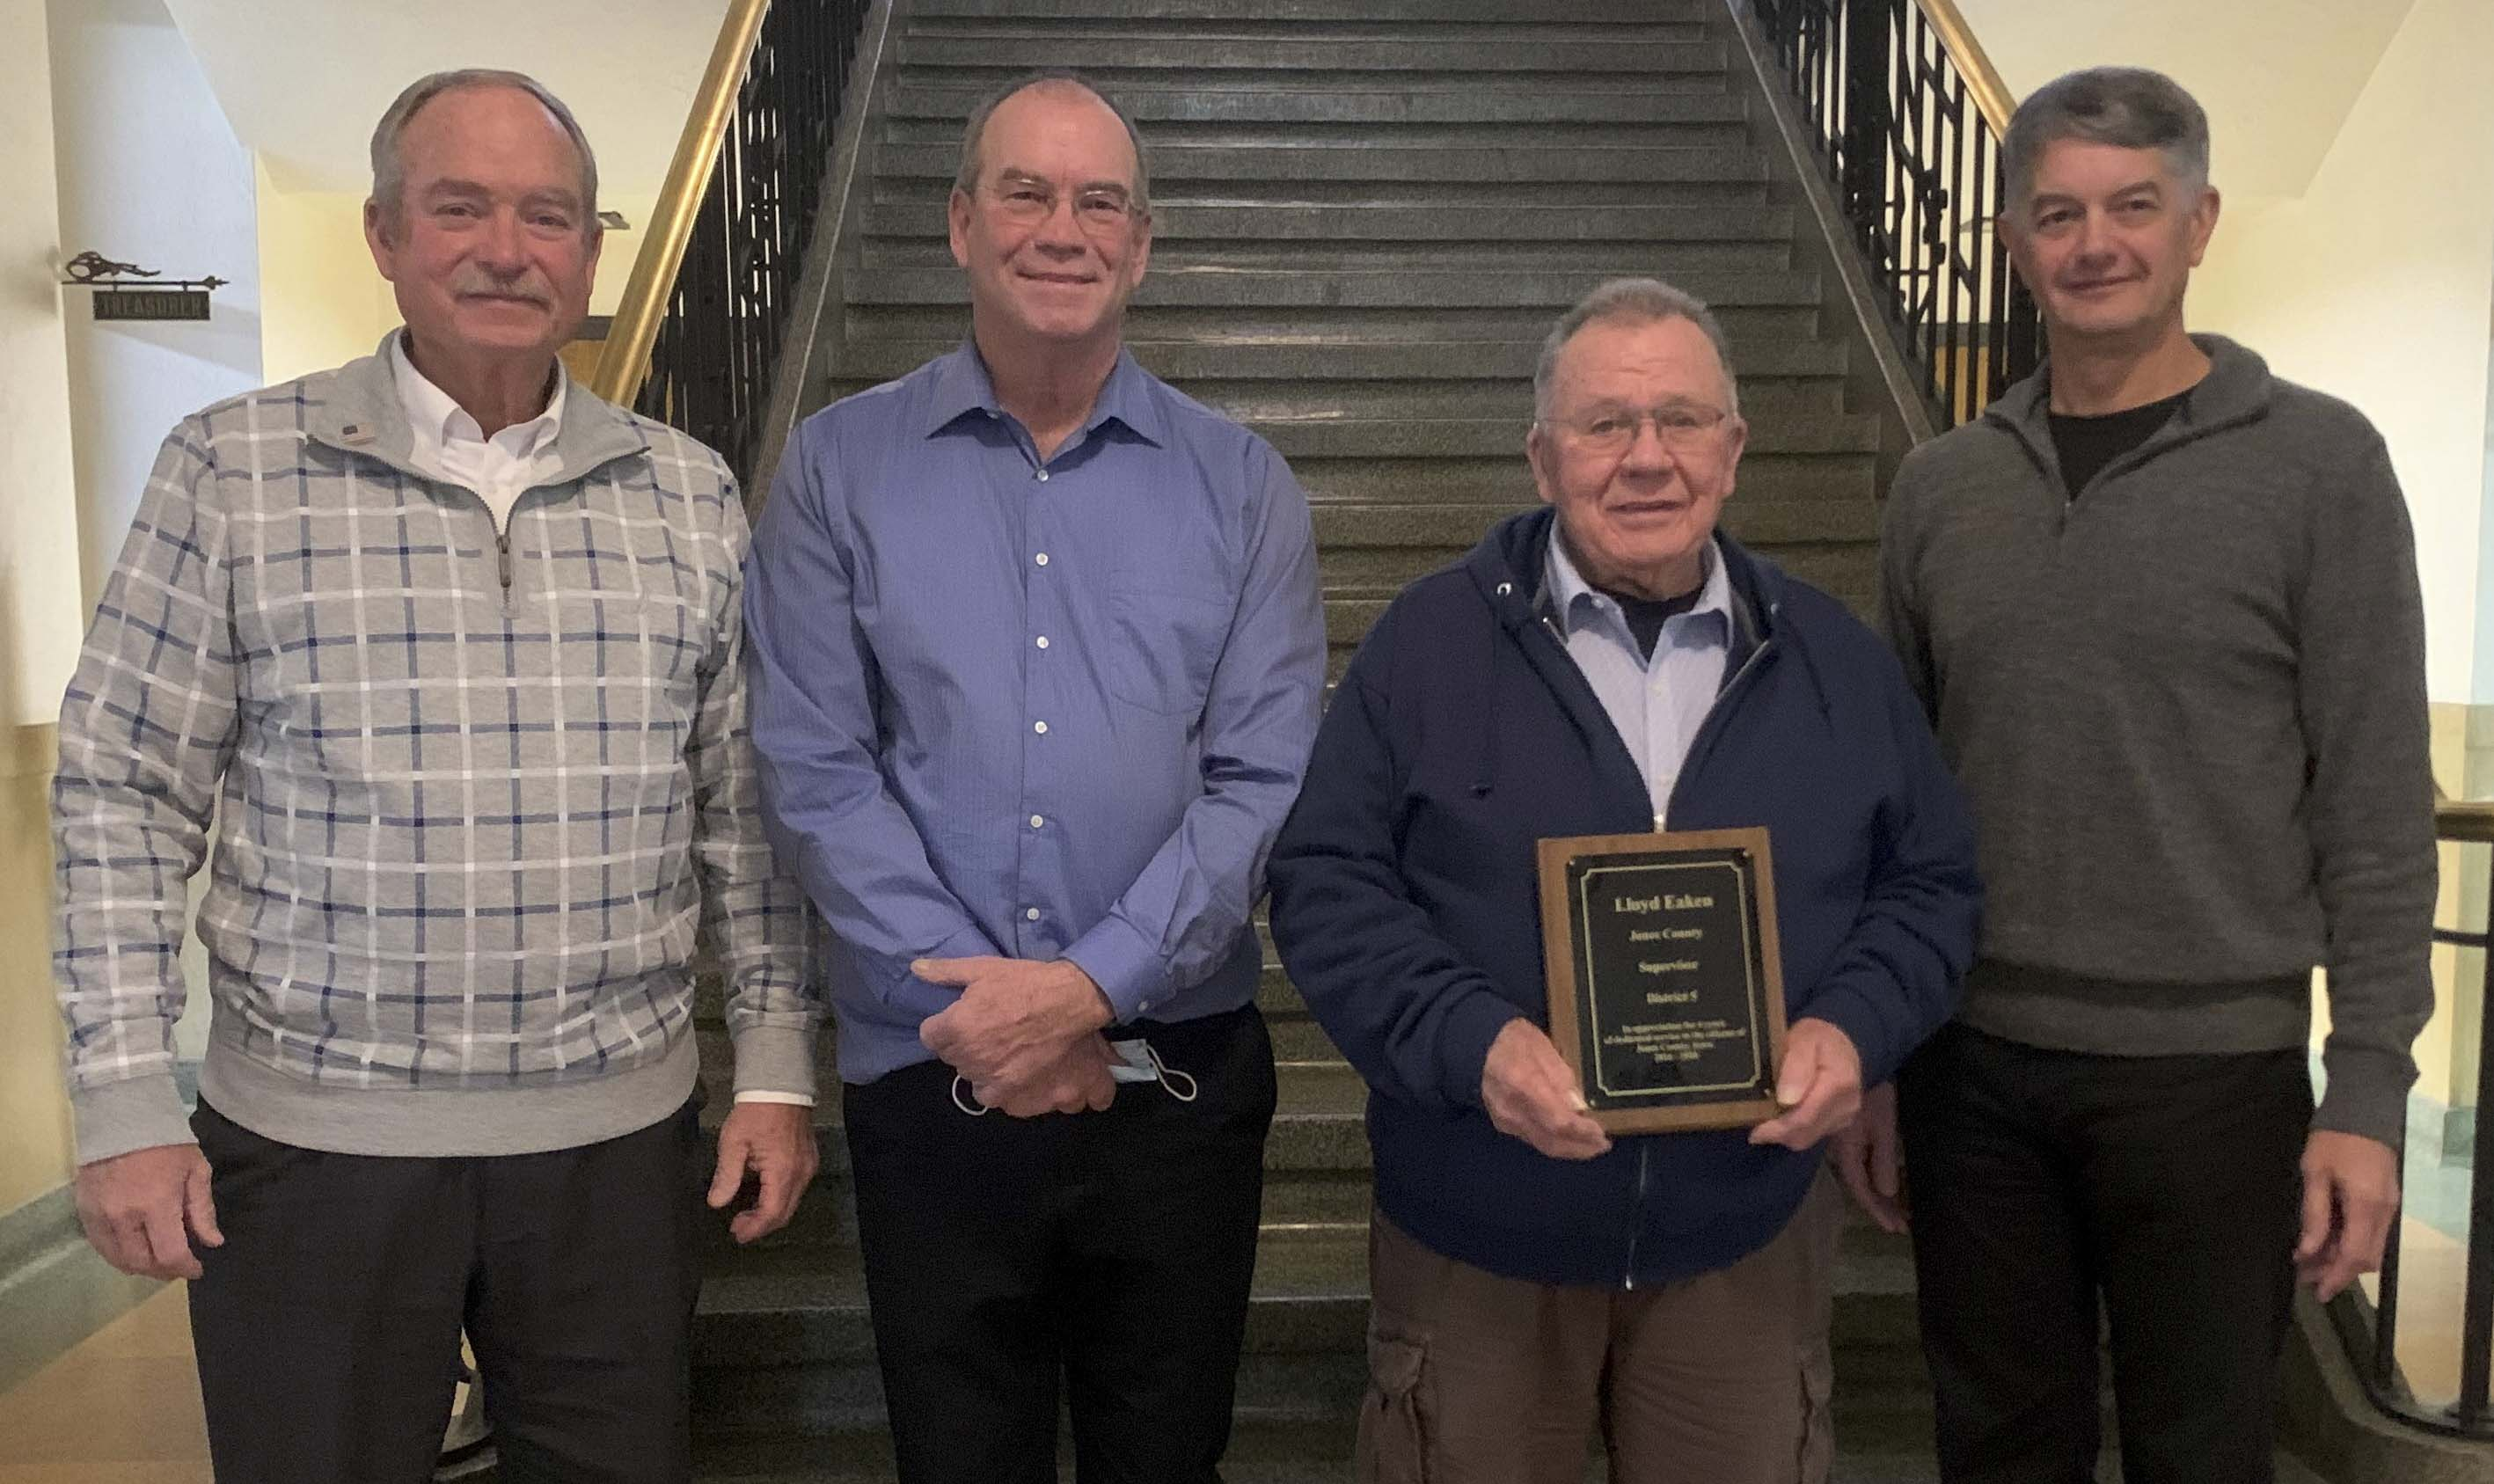 Last week following their last board meeting of 2020 on Dec. 29, the Jones County Supervisors presented out-going supervisors Lloyd Eaken and Wayne Manternach with plaques of appreciation for their years of service. From left are Ned Rohwedder, Jon Zirkelbach, Eaken, and Joe Oswald. Manternach was absent. (Photo submitted)